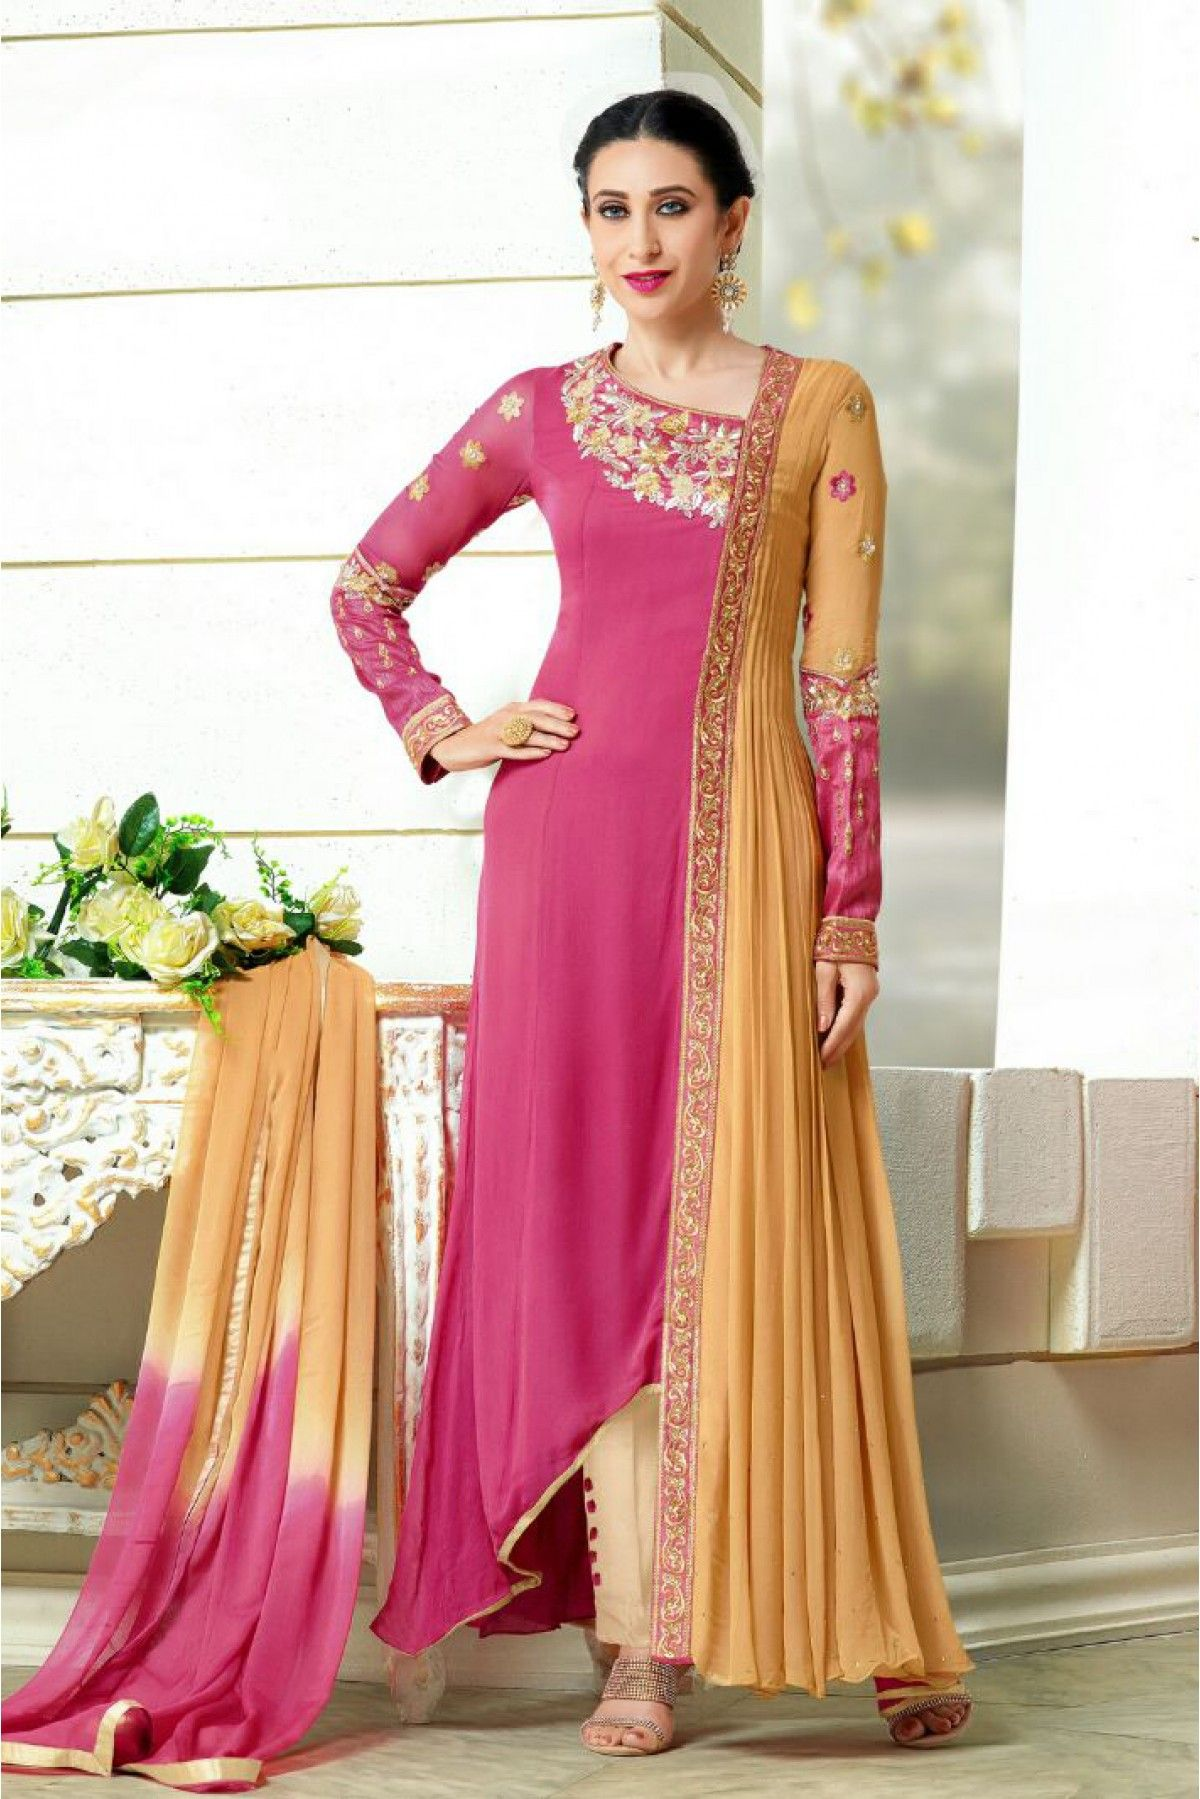 4d2e27f678 Pink and Beige Colour Faux Georgette Fabric Designer Semi Stitched Anarkali  Salwar Kameez Comes With Matching Dupatta and Bottom Fabric.